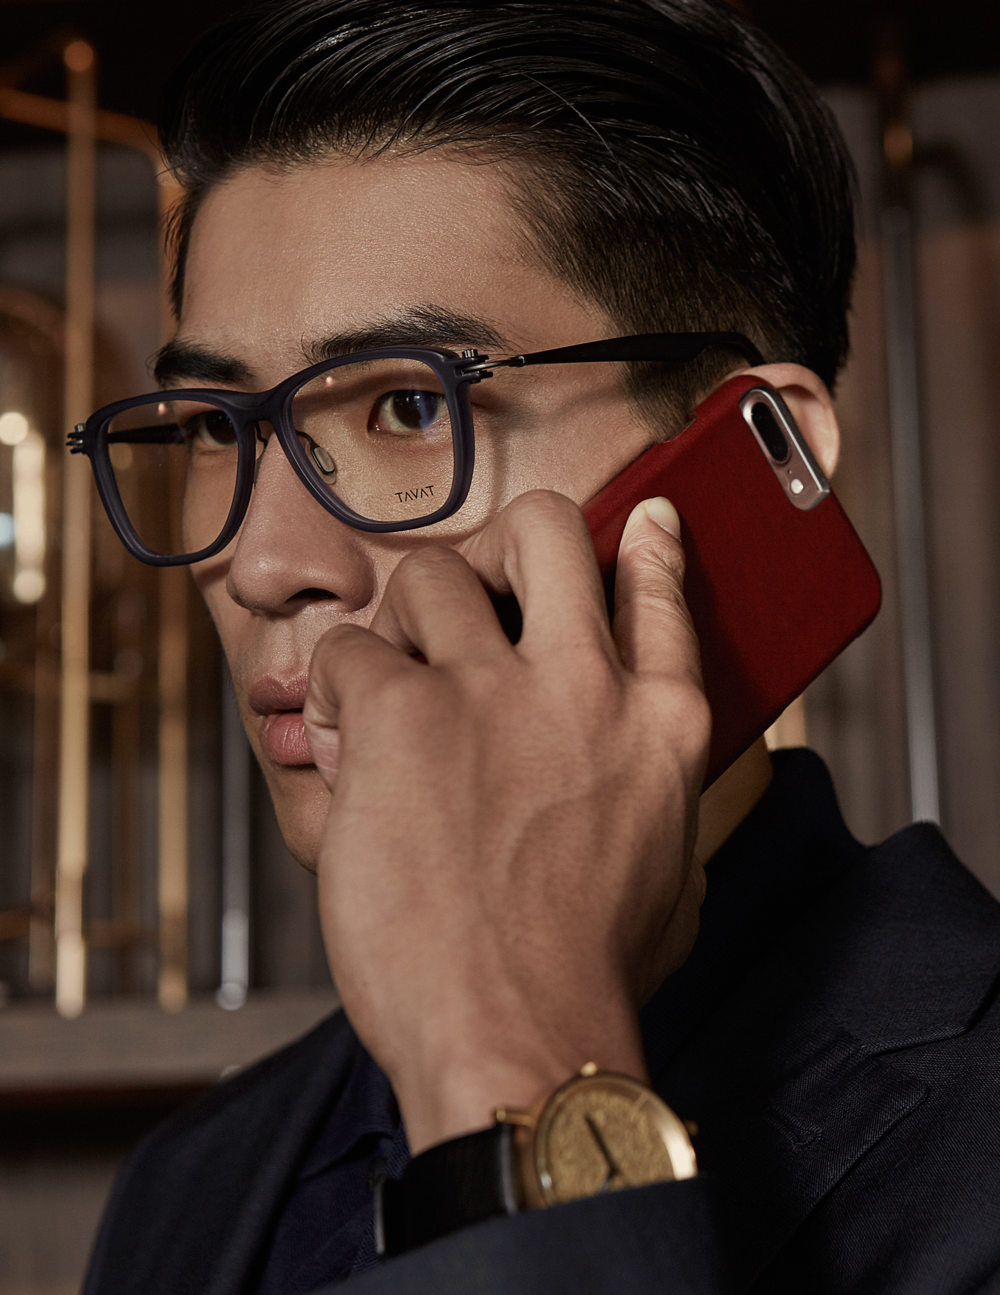 clothes : MARBLE & WOOD / watch : FORREST / eyeglasses : TAVAT  iphone case : MARBLE & WOOD